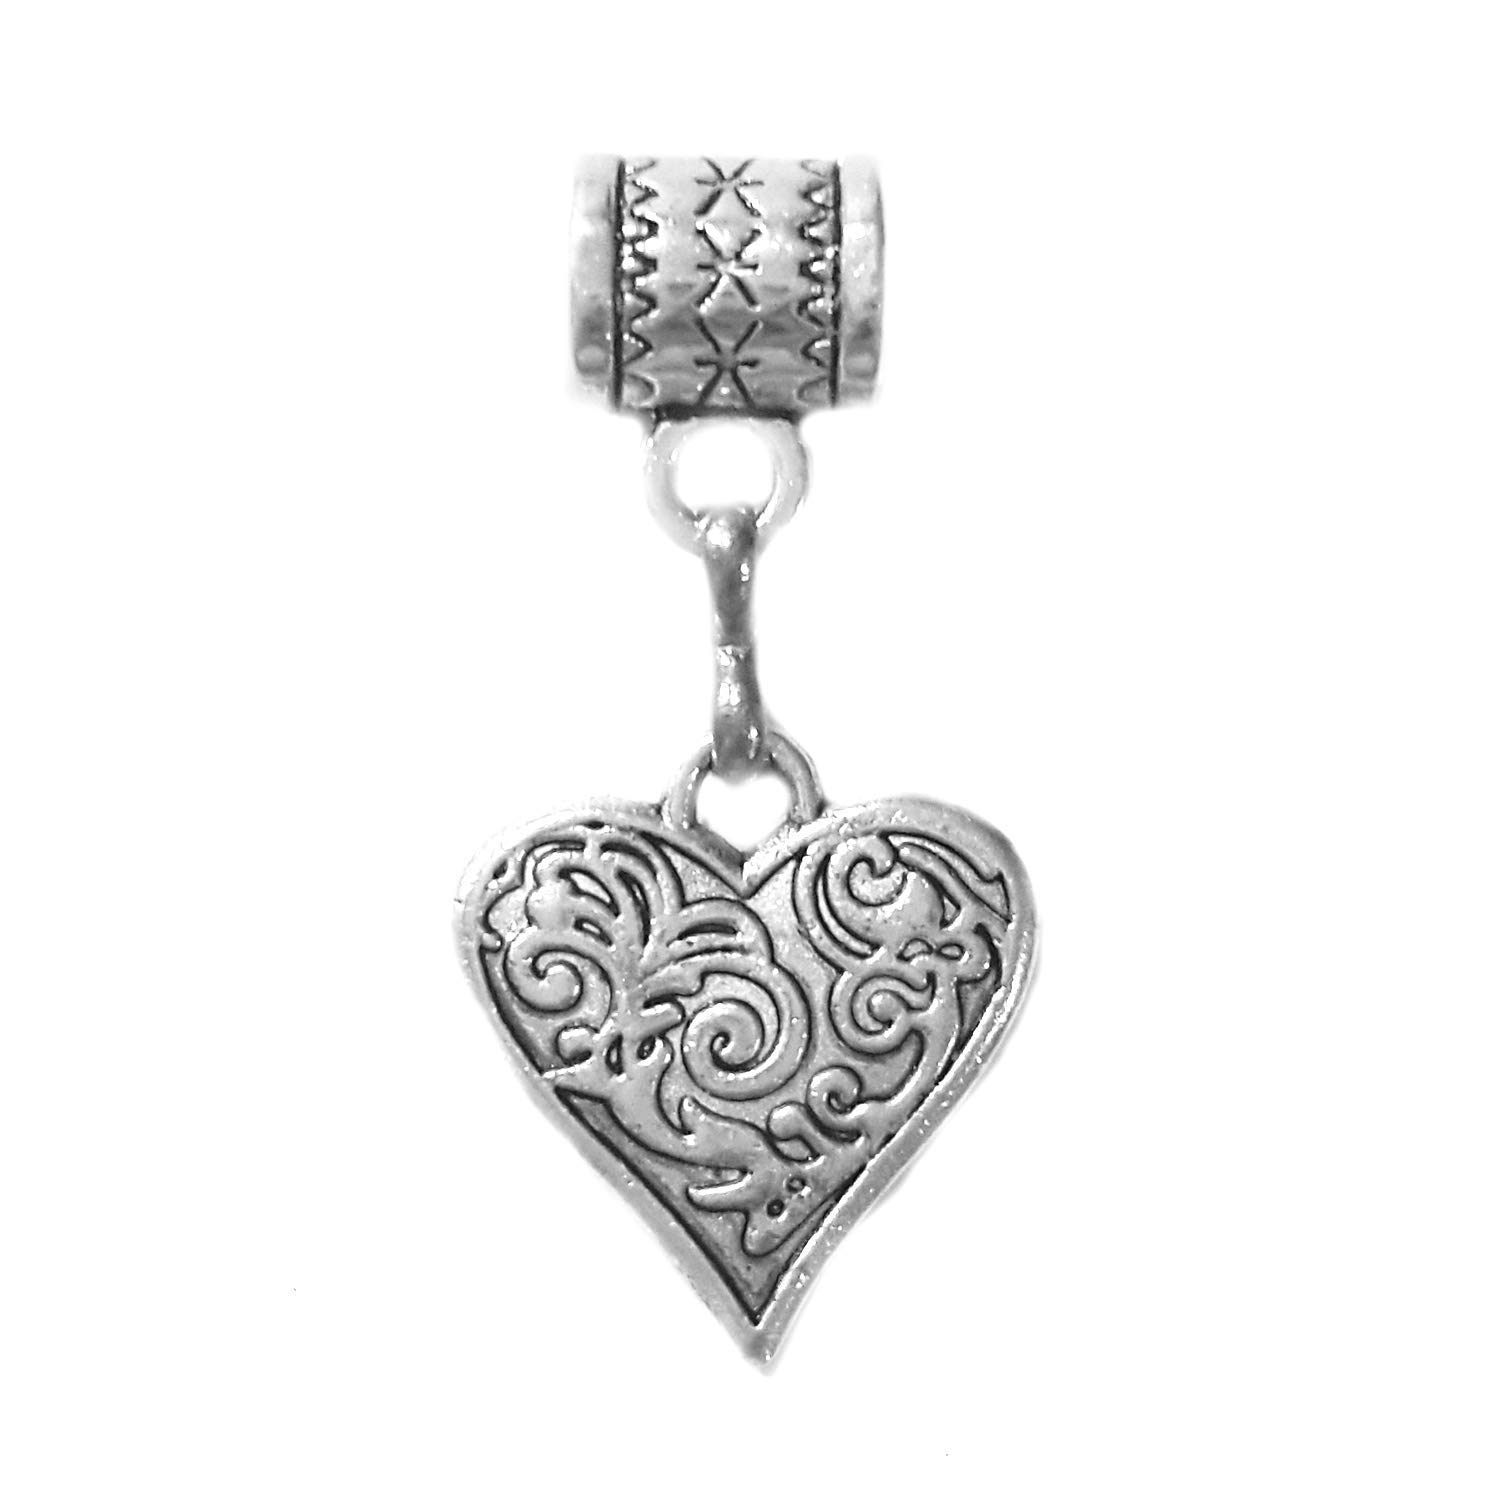 """Heart charm"" is a Tibetan Silver embossed charm by Mossy Cabin for large hole style snake chain charm bracelets, or worn on a neck chain, pendant necklace, or key chain"